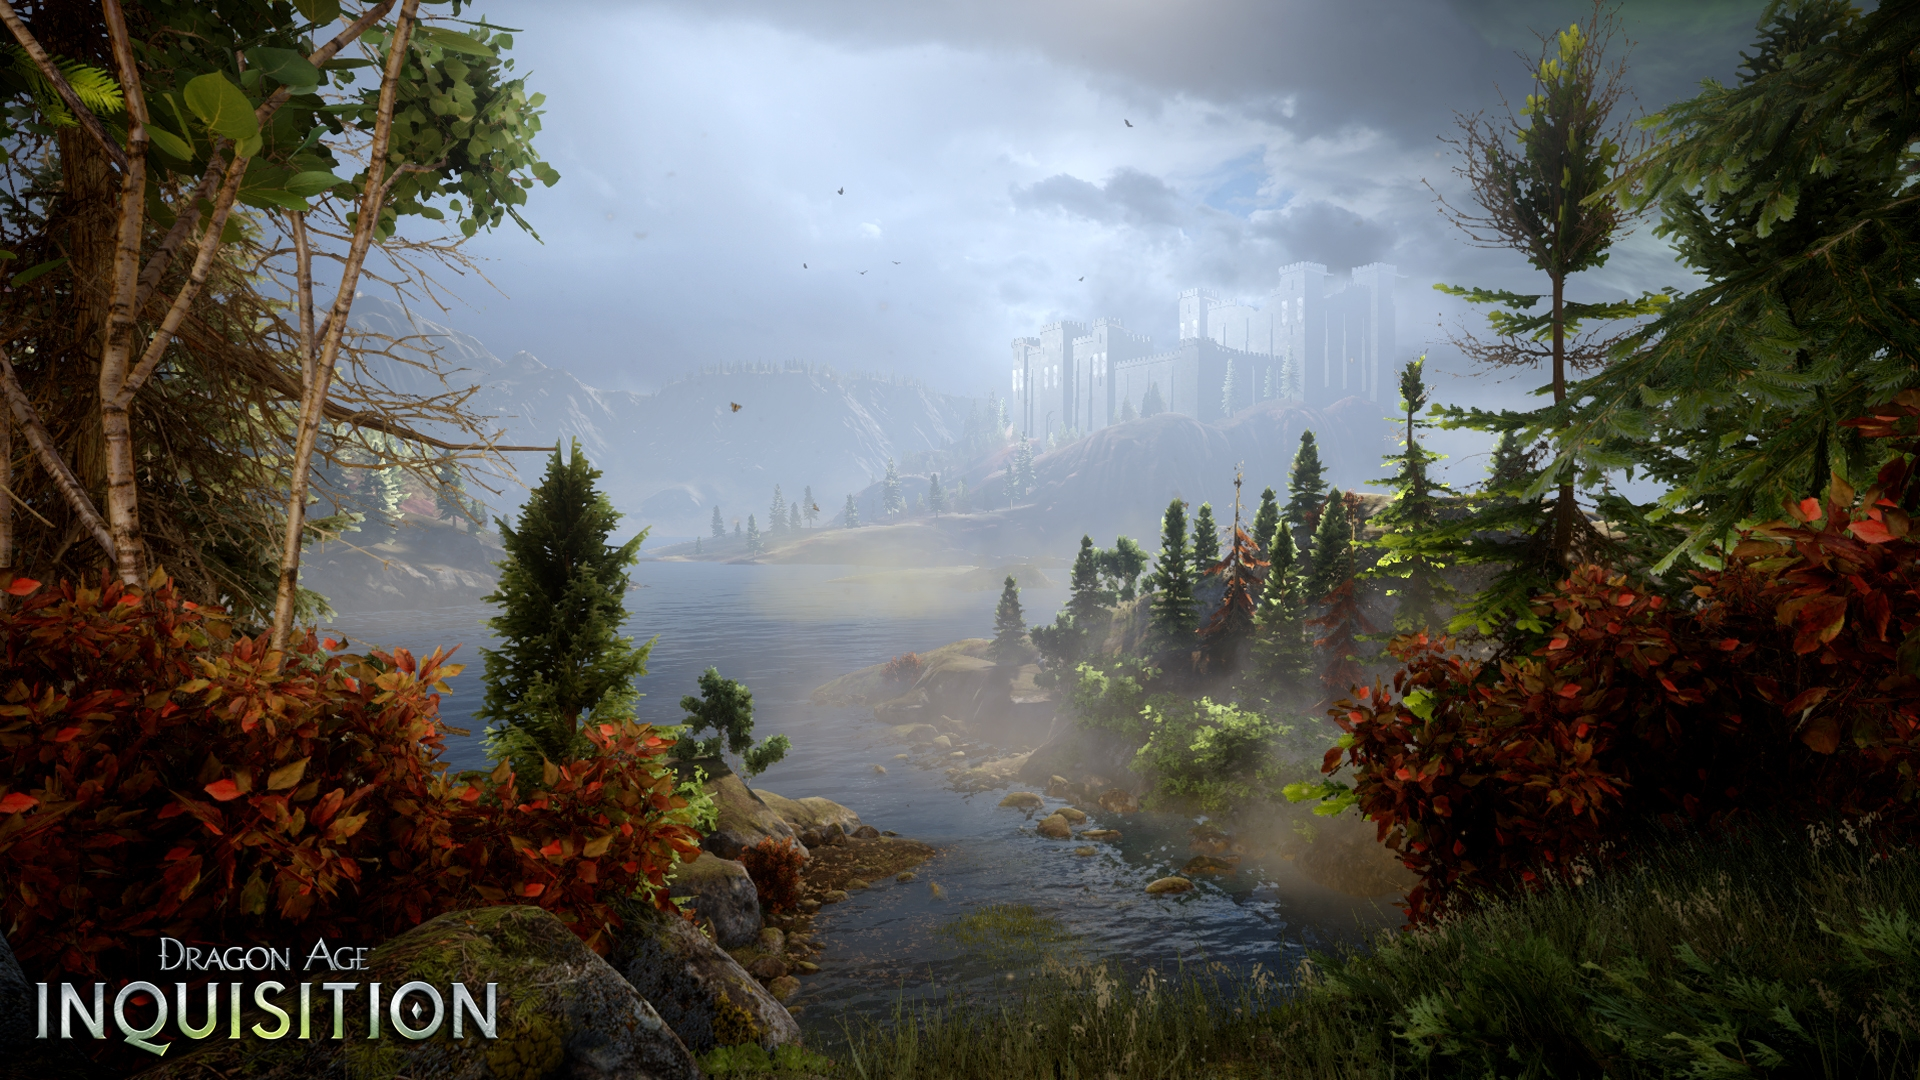 187 Dragon Age: Inquisition HD Wallpapers